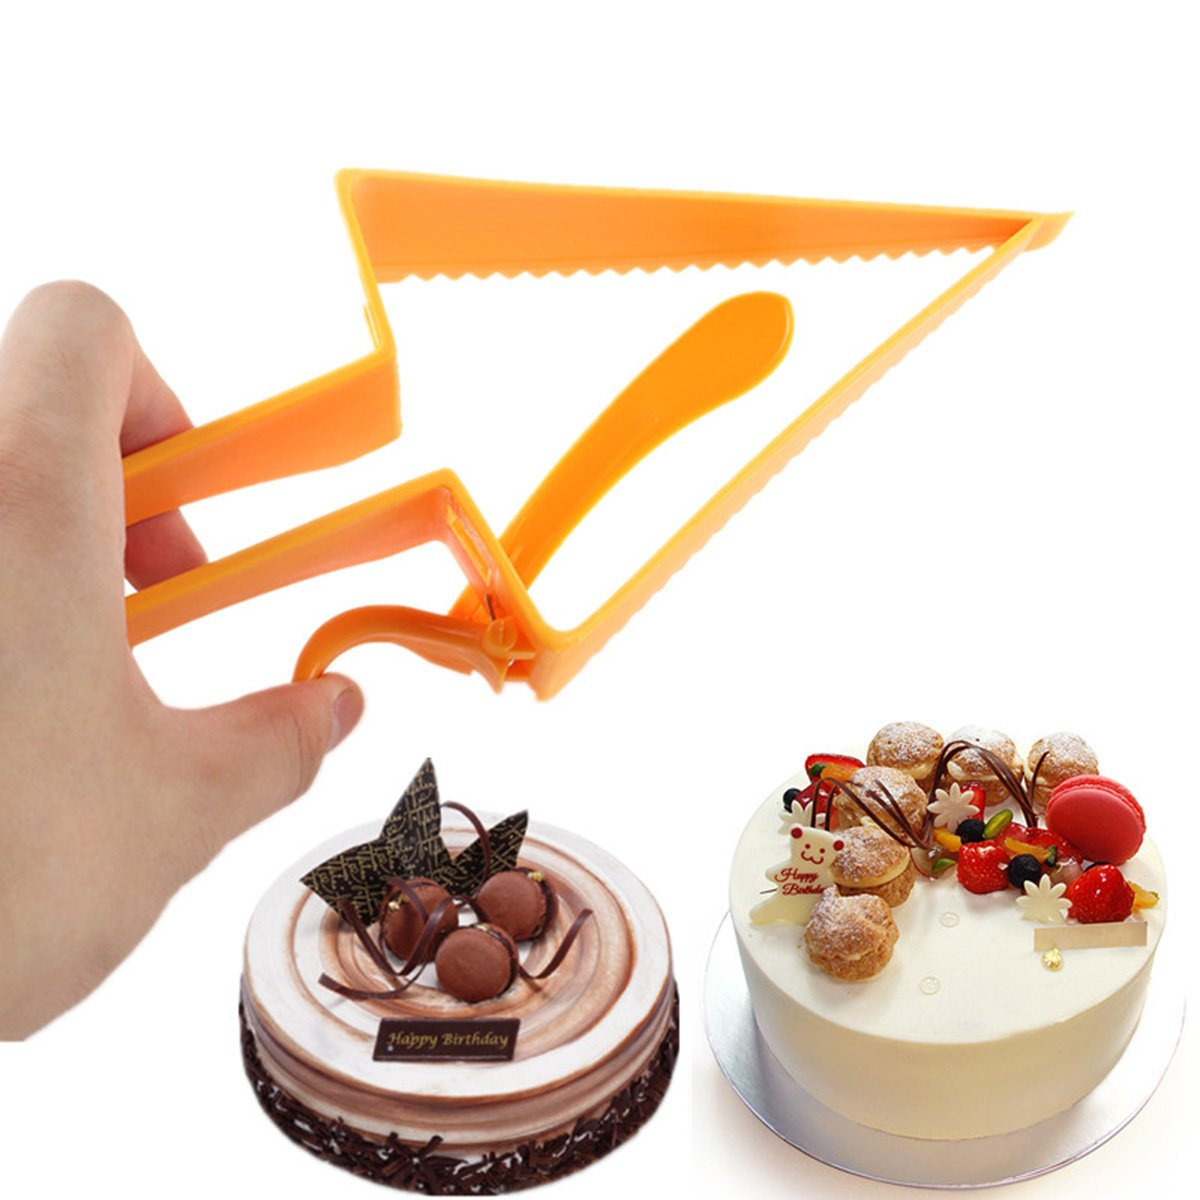 Nrpfell Triangle-Design Adjustable Cake Cutter Baking Tool Cake Slicer Baking Cutter Tool by Nrpfell (Image #4)